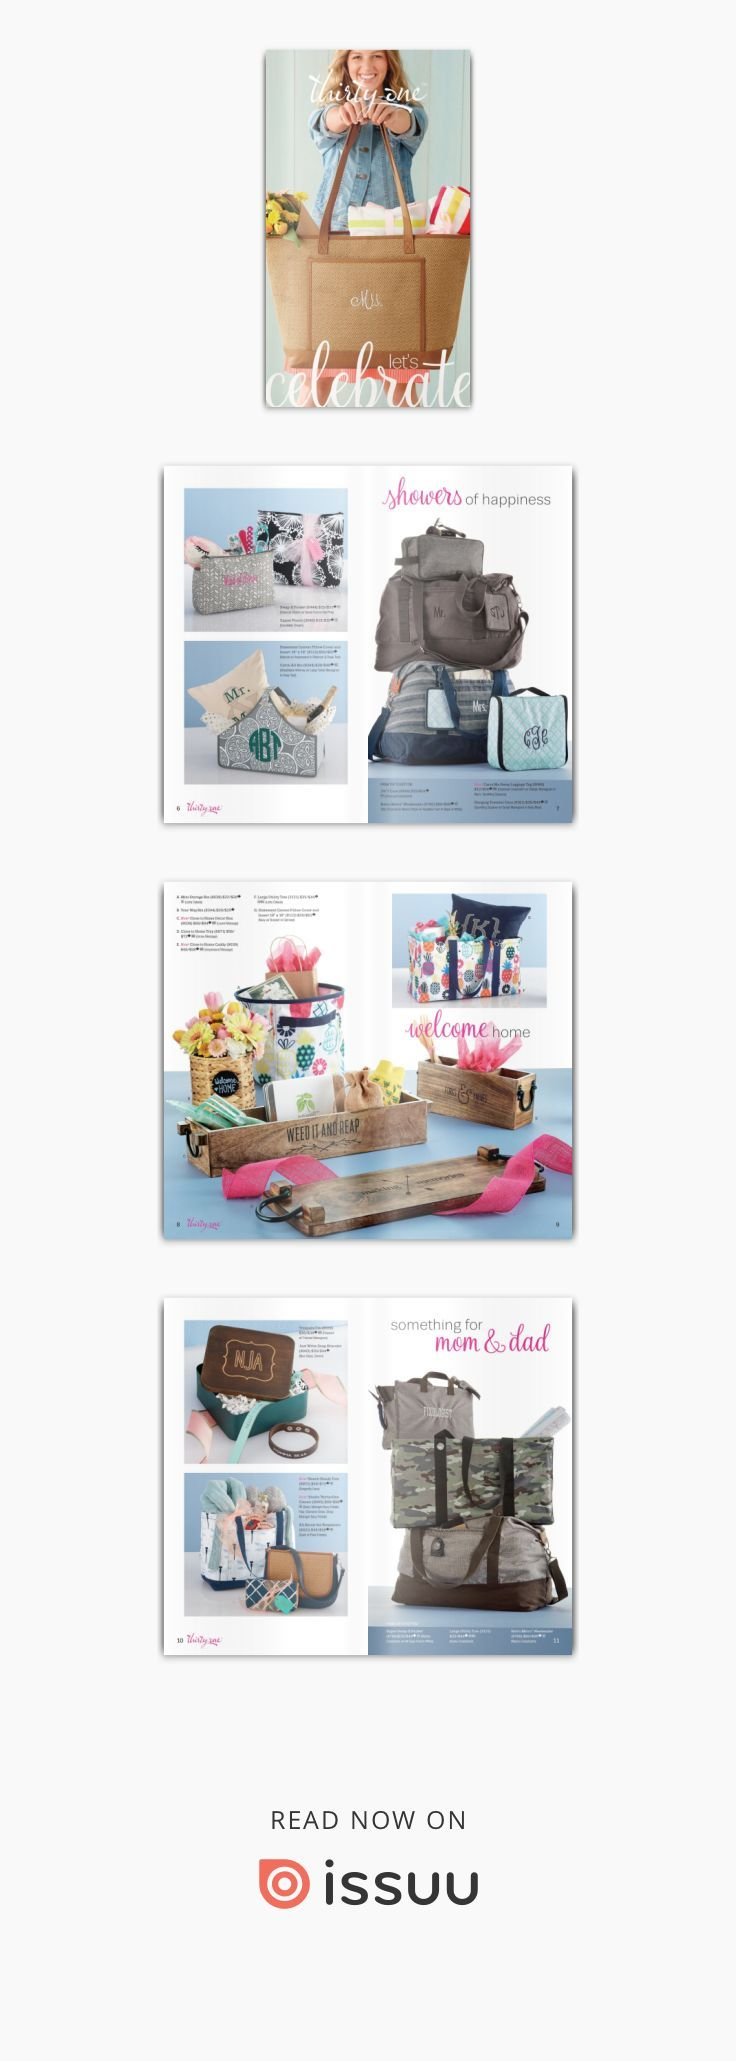 Mini Catalogue: Celebration To order visit www.mythirtyone.ca/2612702